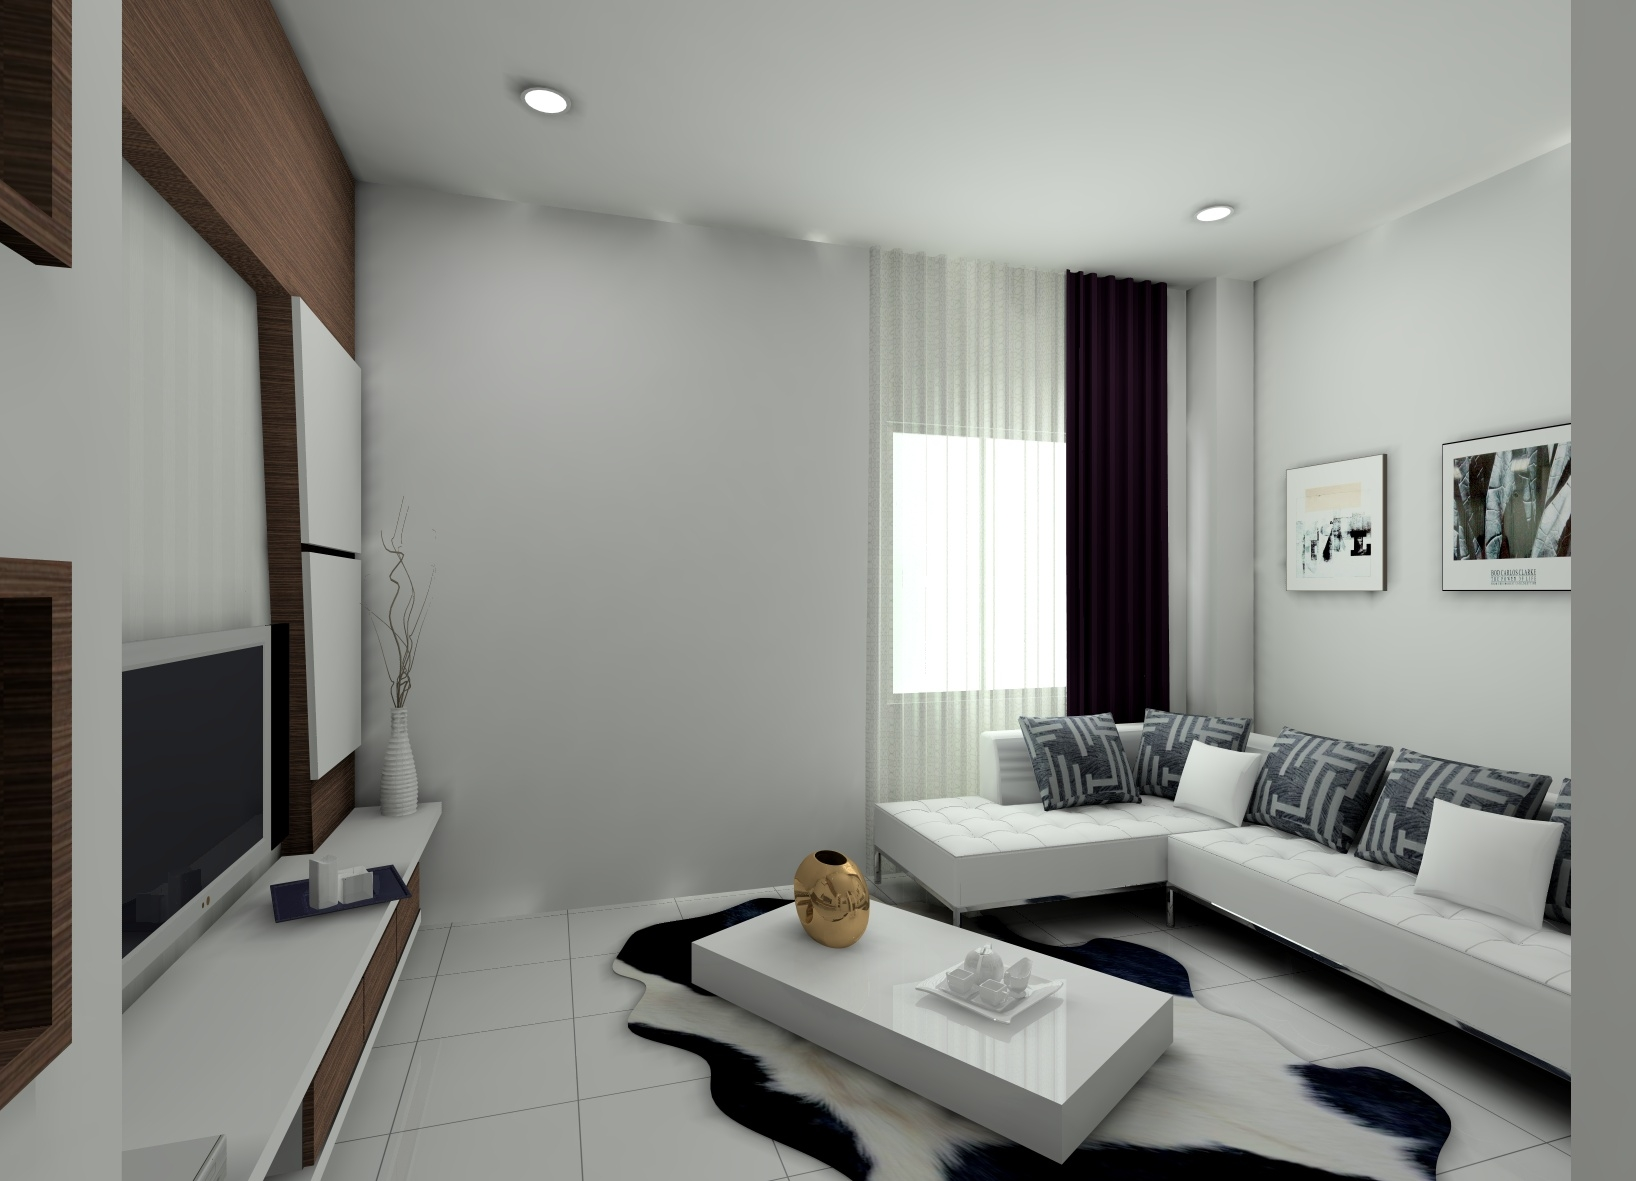 Living Room Ideas Malaysia living room decorating ideas malaysia google search hall interior